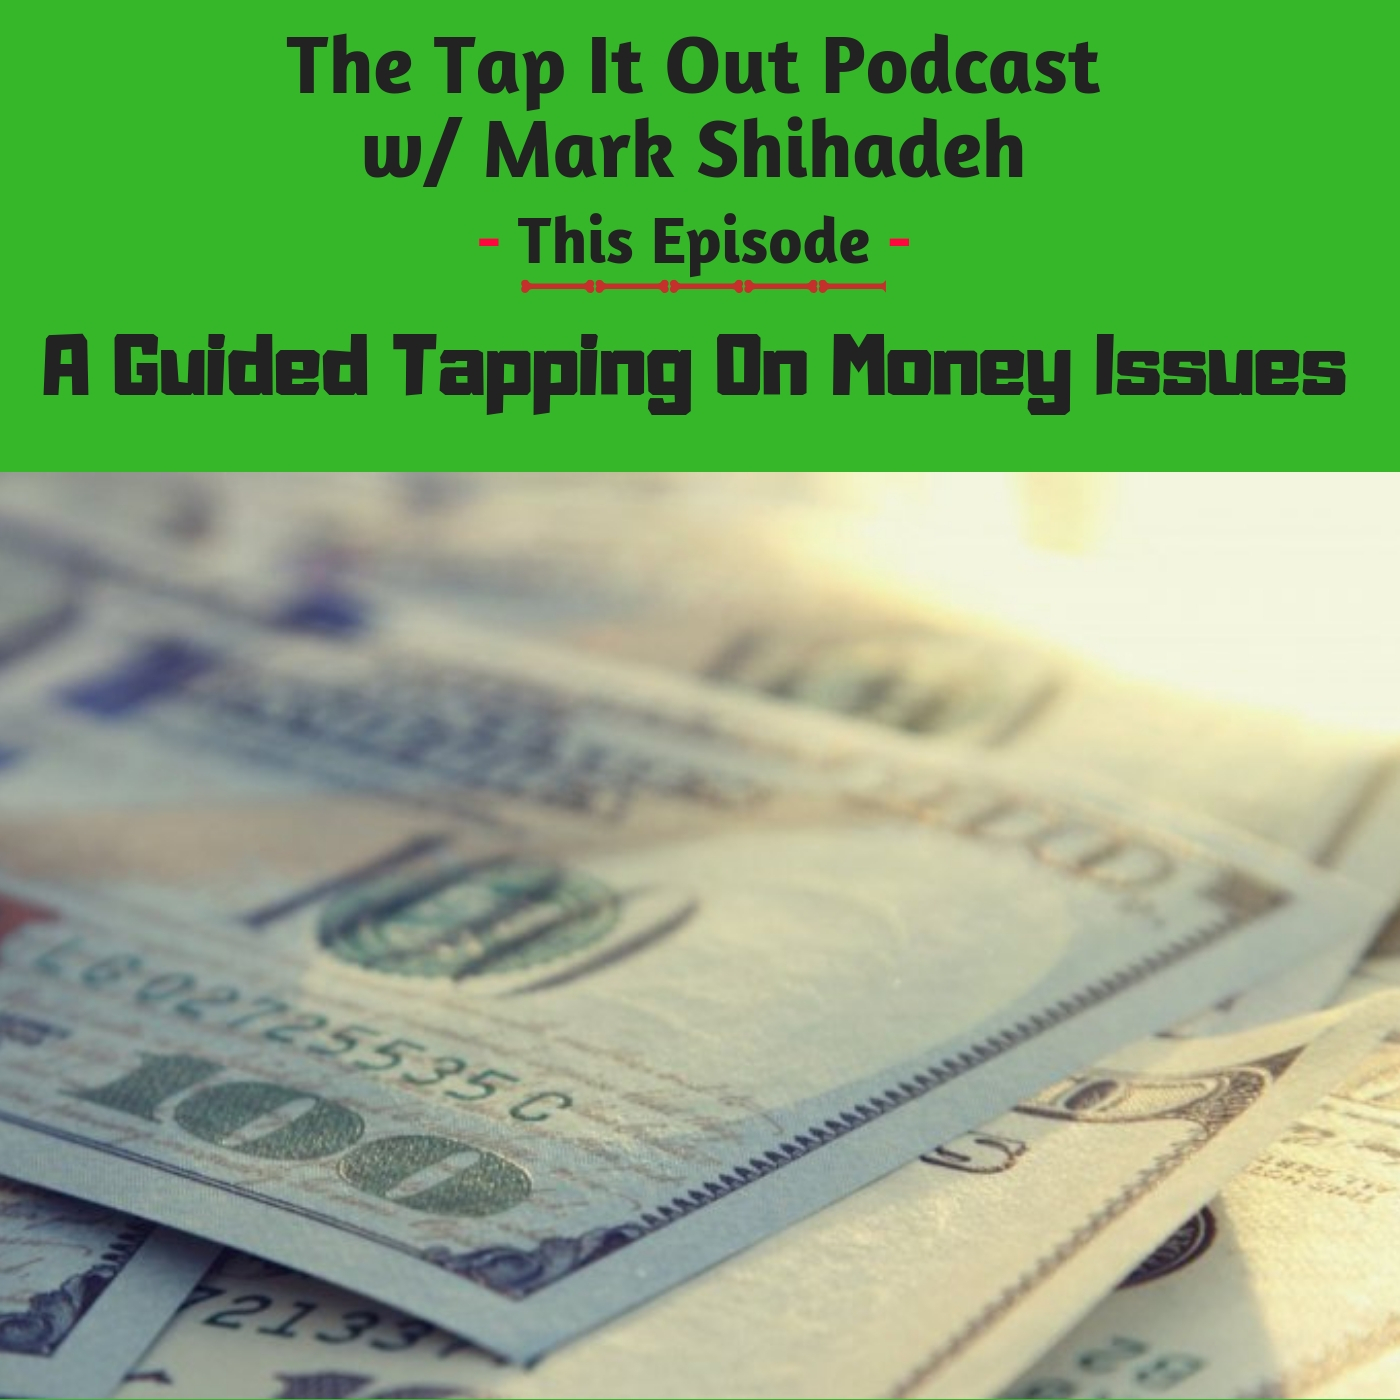 Ep 11: A guided Tapping on Money Issues